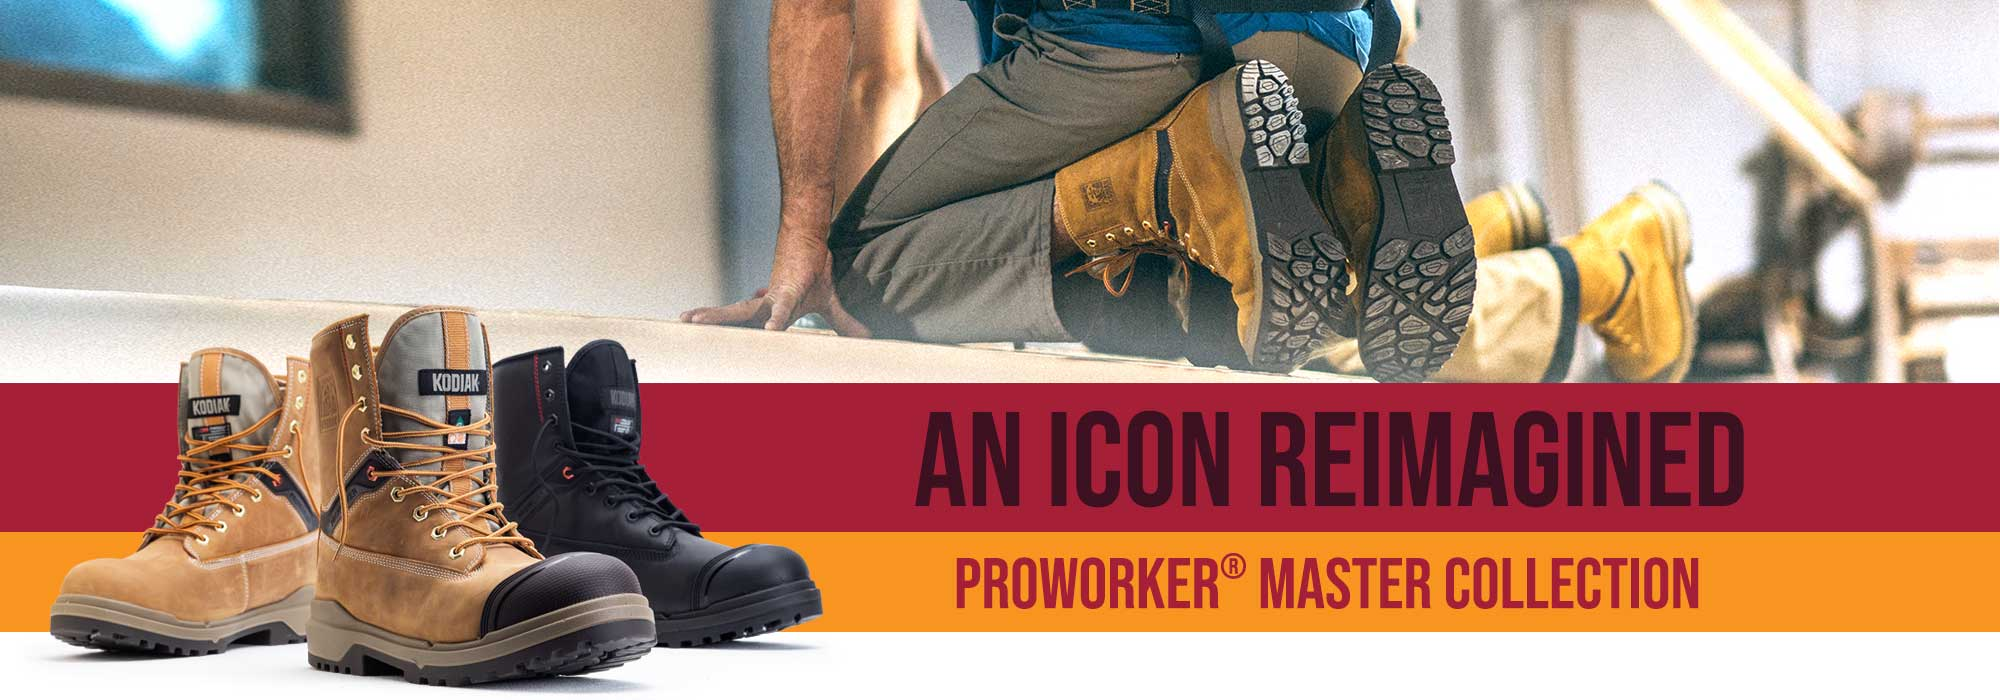 ProWorker Master: An Icon Reimagined